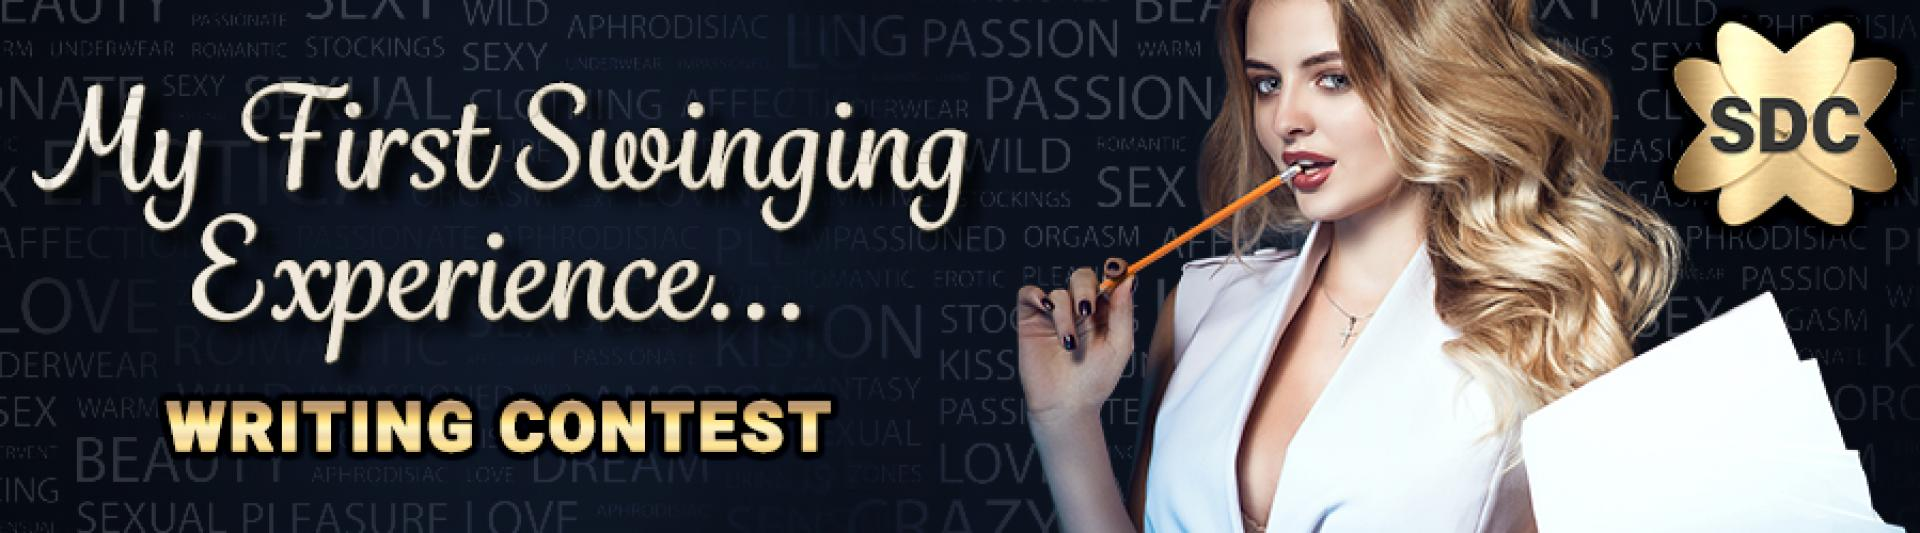 SDC Erotic Writing Contest Story Swinging Experience Member Story